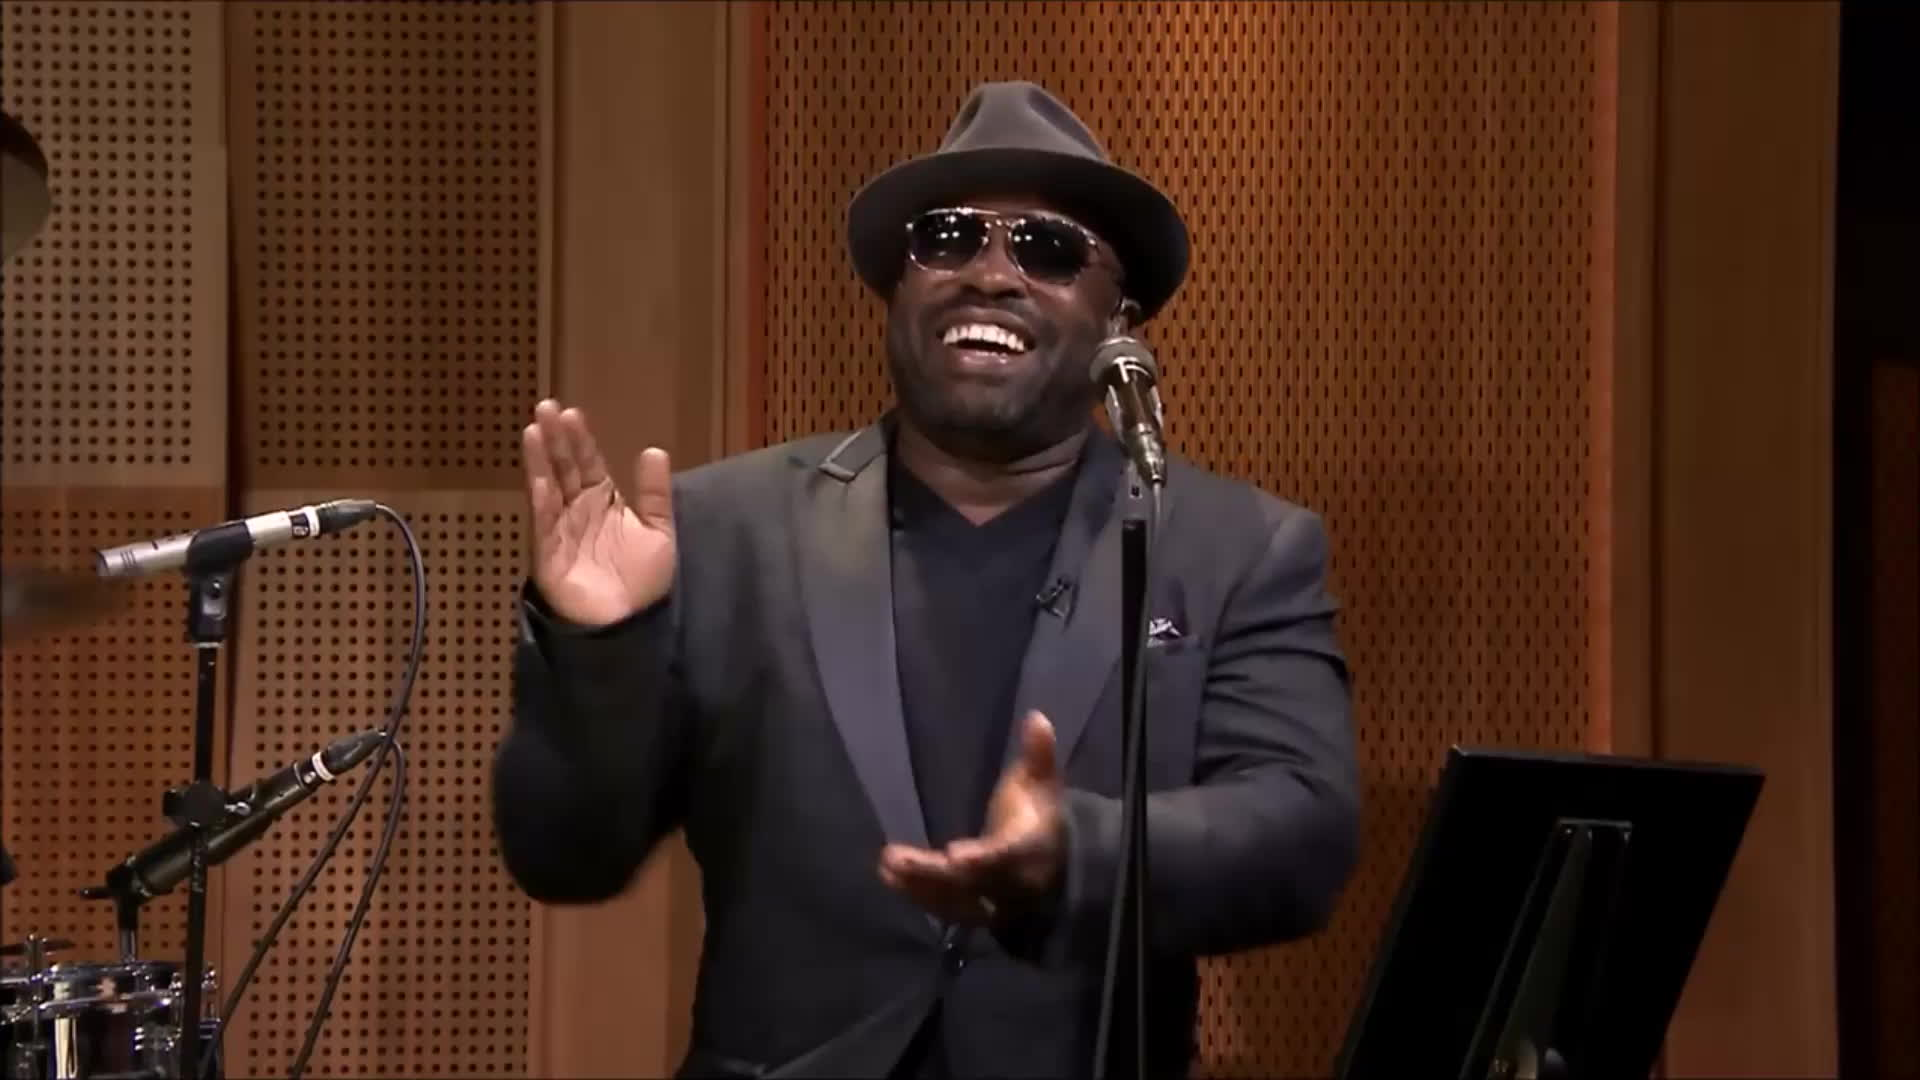 applause, black thought, clap, clapping, good job, jimmyfallonshow, slow clap, tariq trotter, Tariq Trotter Slow Clap GIFs